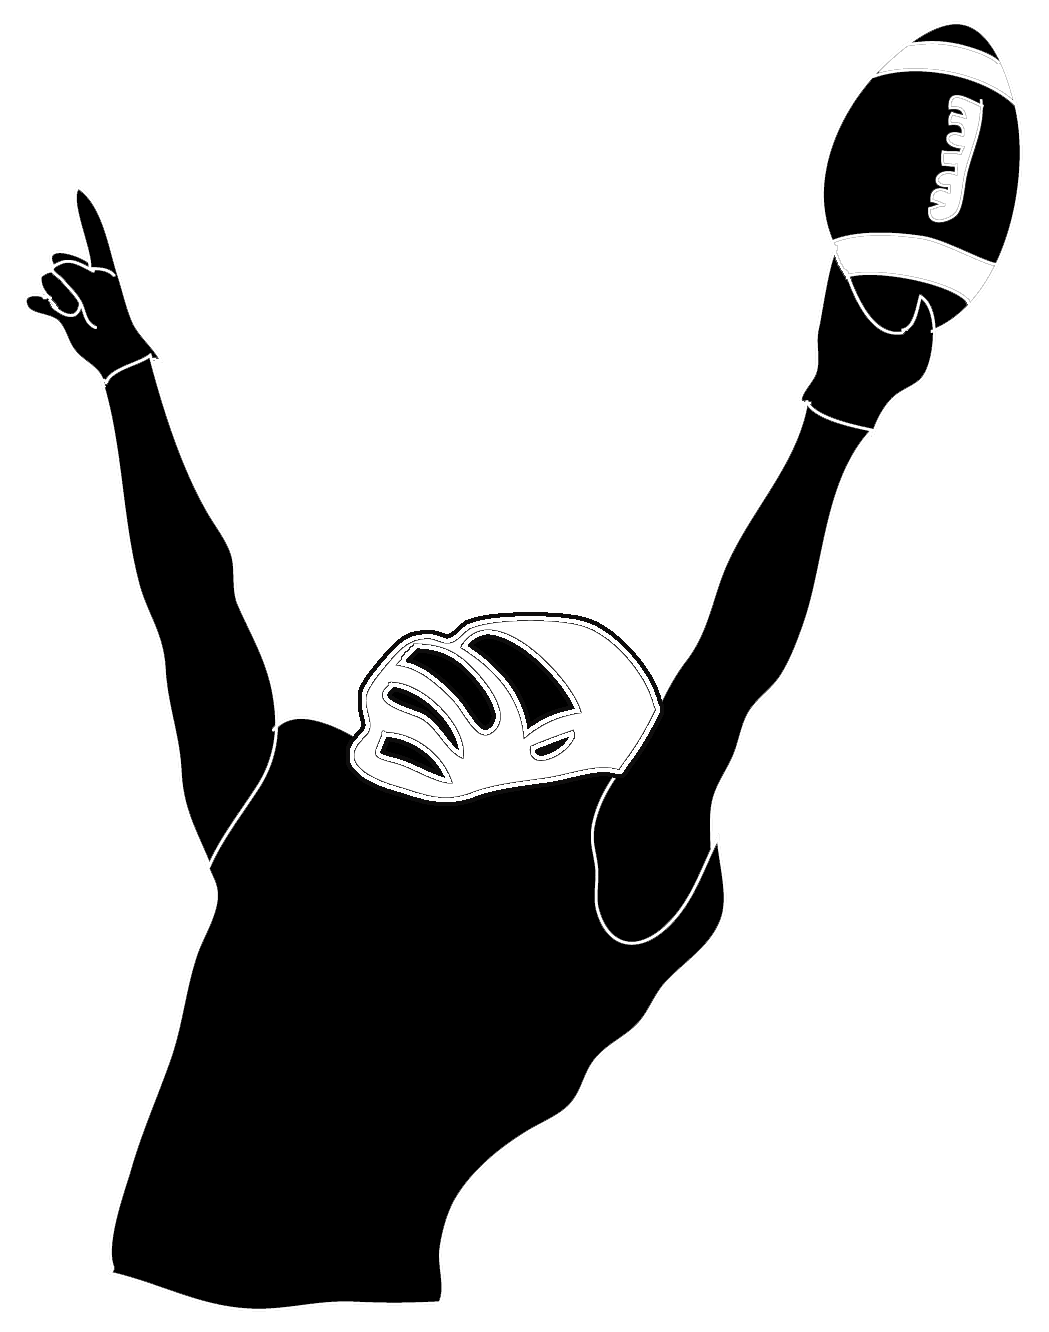 American football player silhouette png. Victory pinterest players victoryfootballplayer